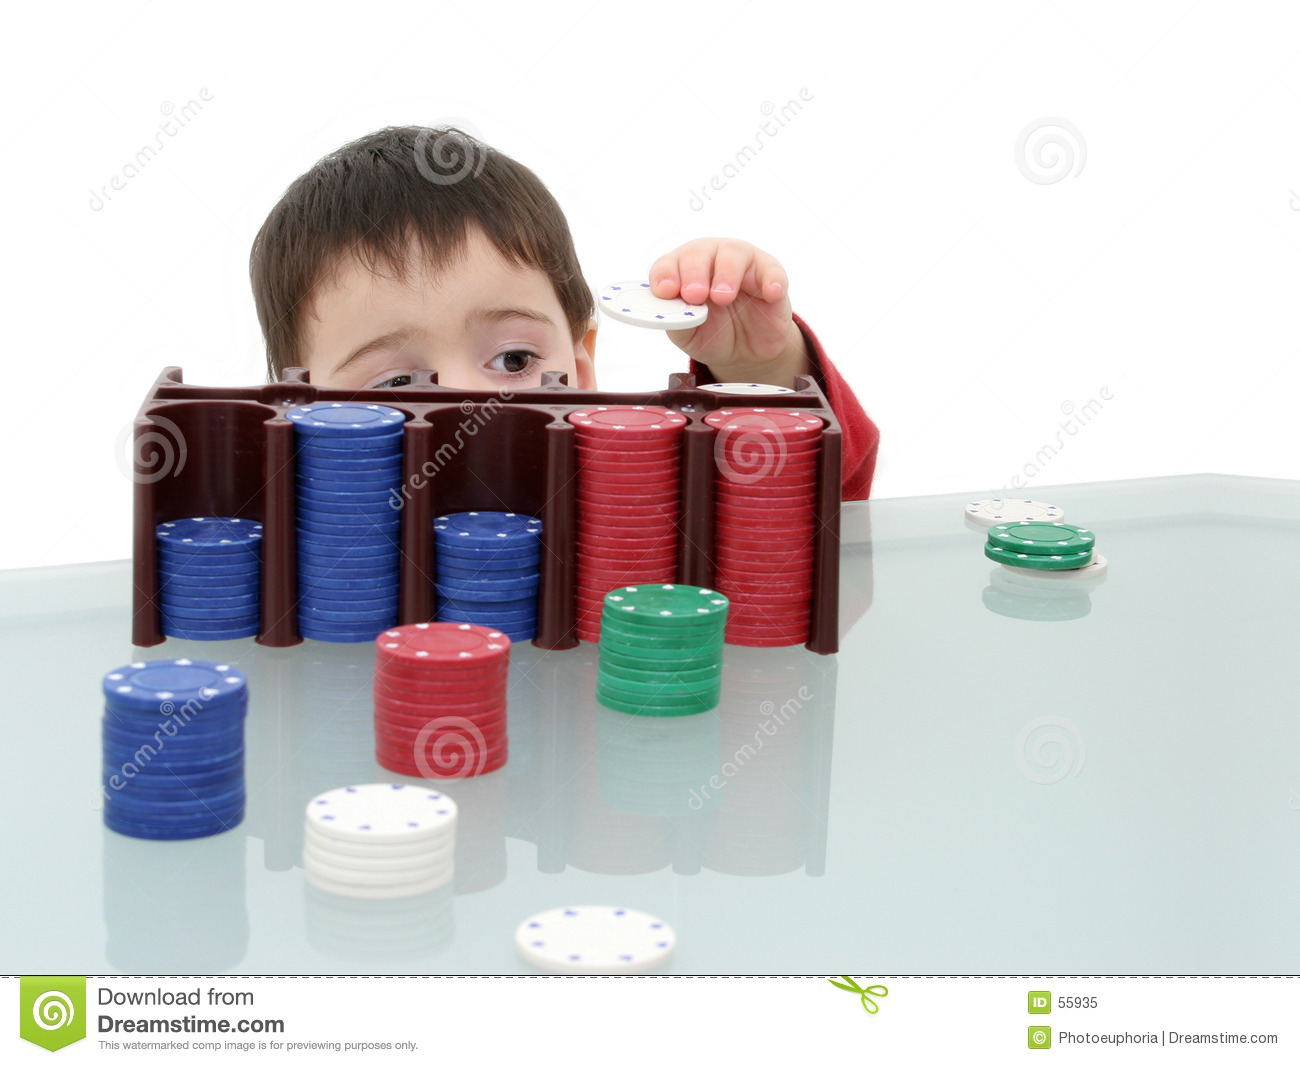 Boy Child Playing with Poker Chips